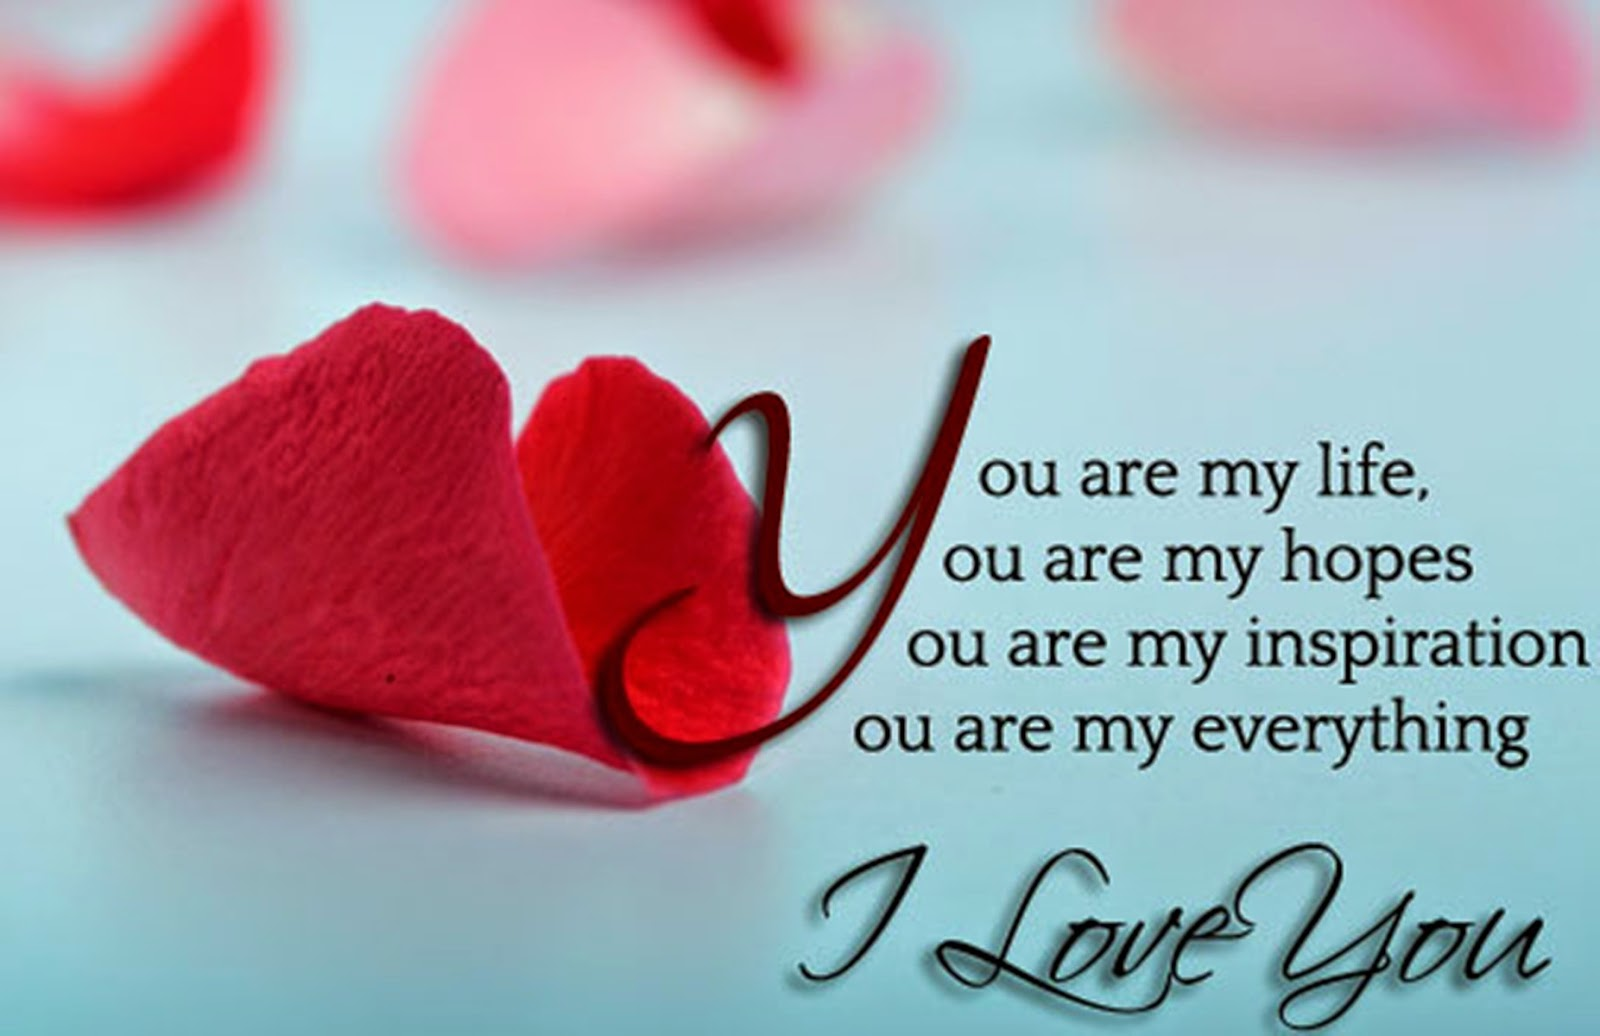 LOVE MESSAGES, WALLPAPERS - Beautiful Messages